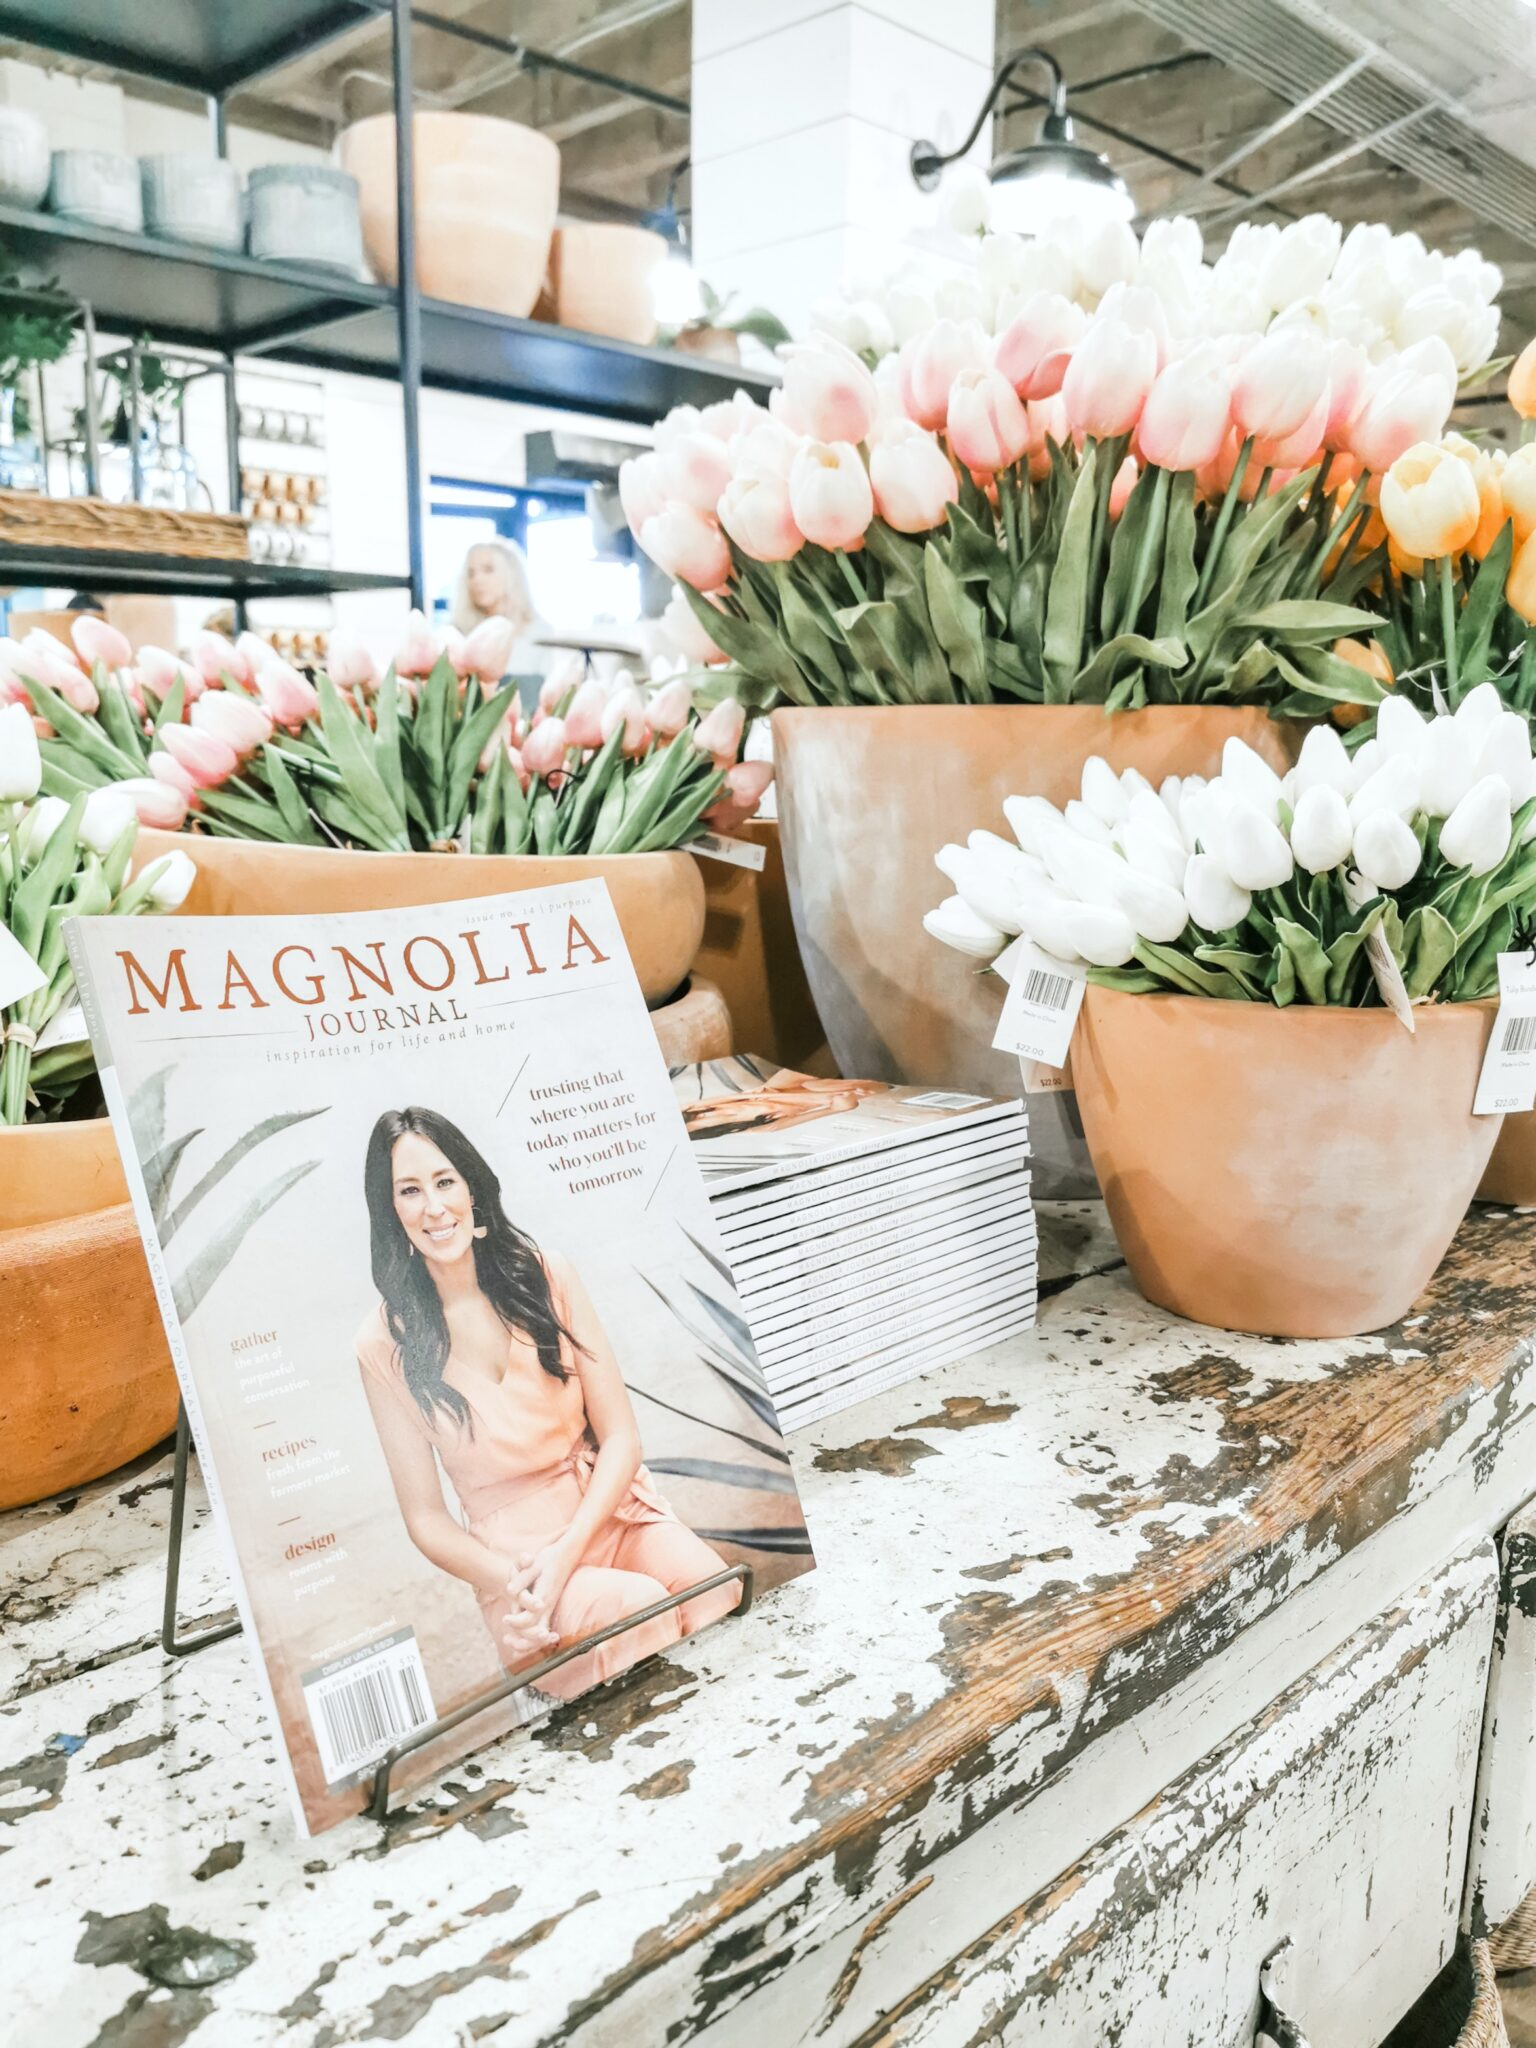 A Magnolia Market magazine on a rustic table with tulips.